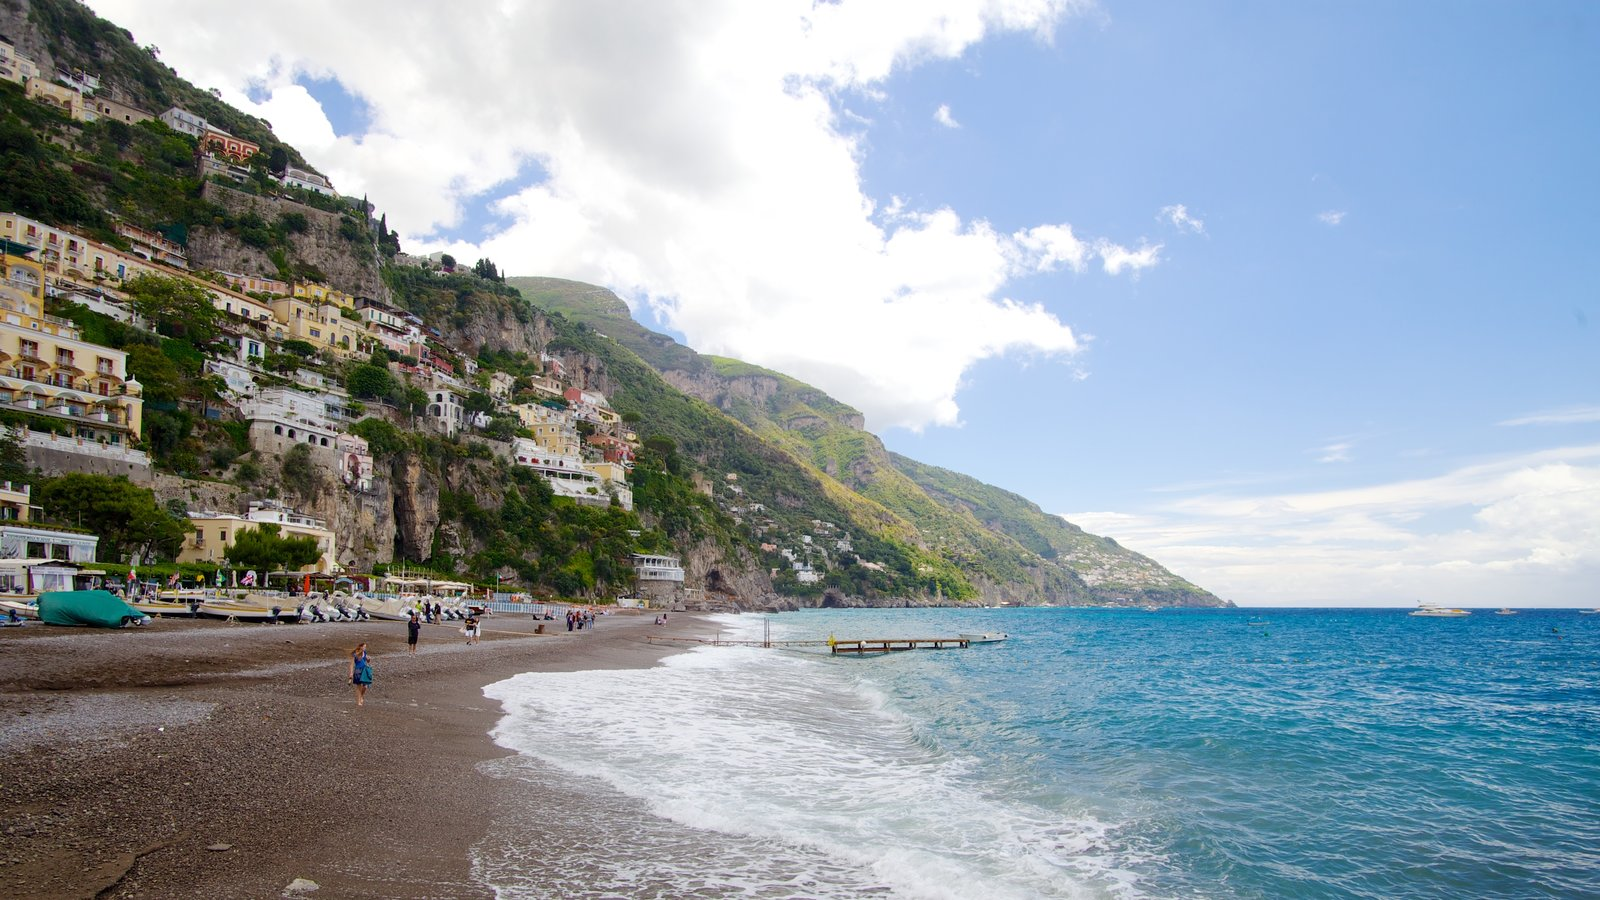 Positano showing a sandy beach, mountains and a coastal town